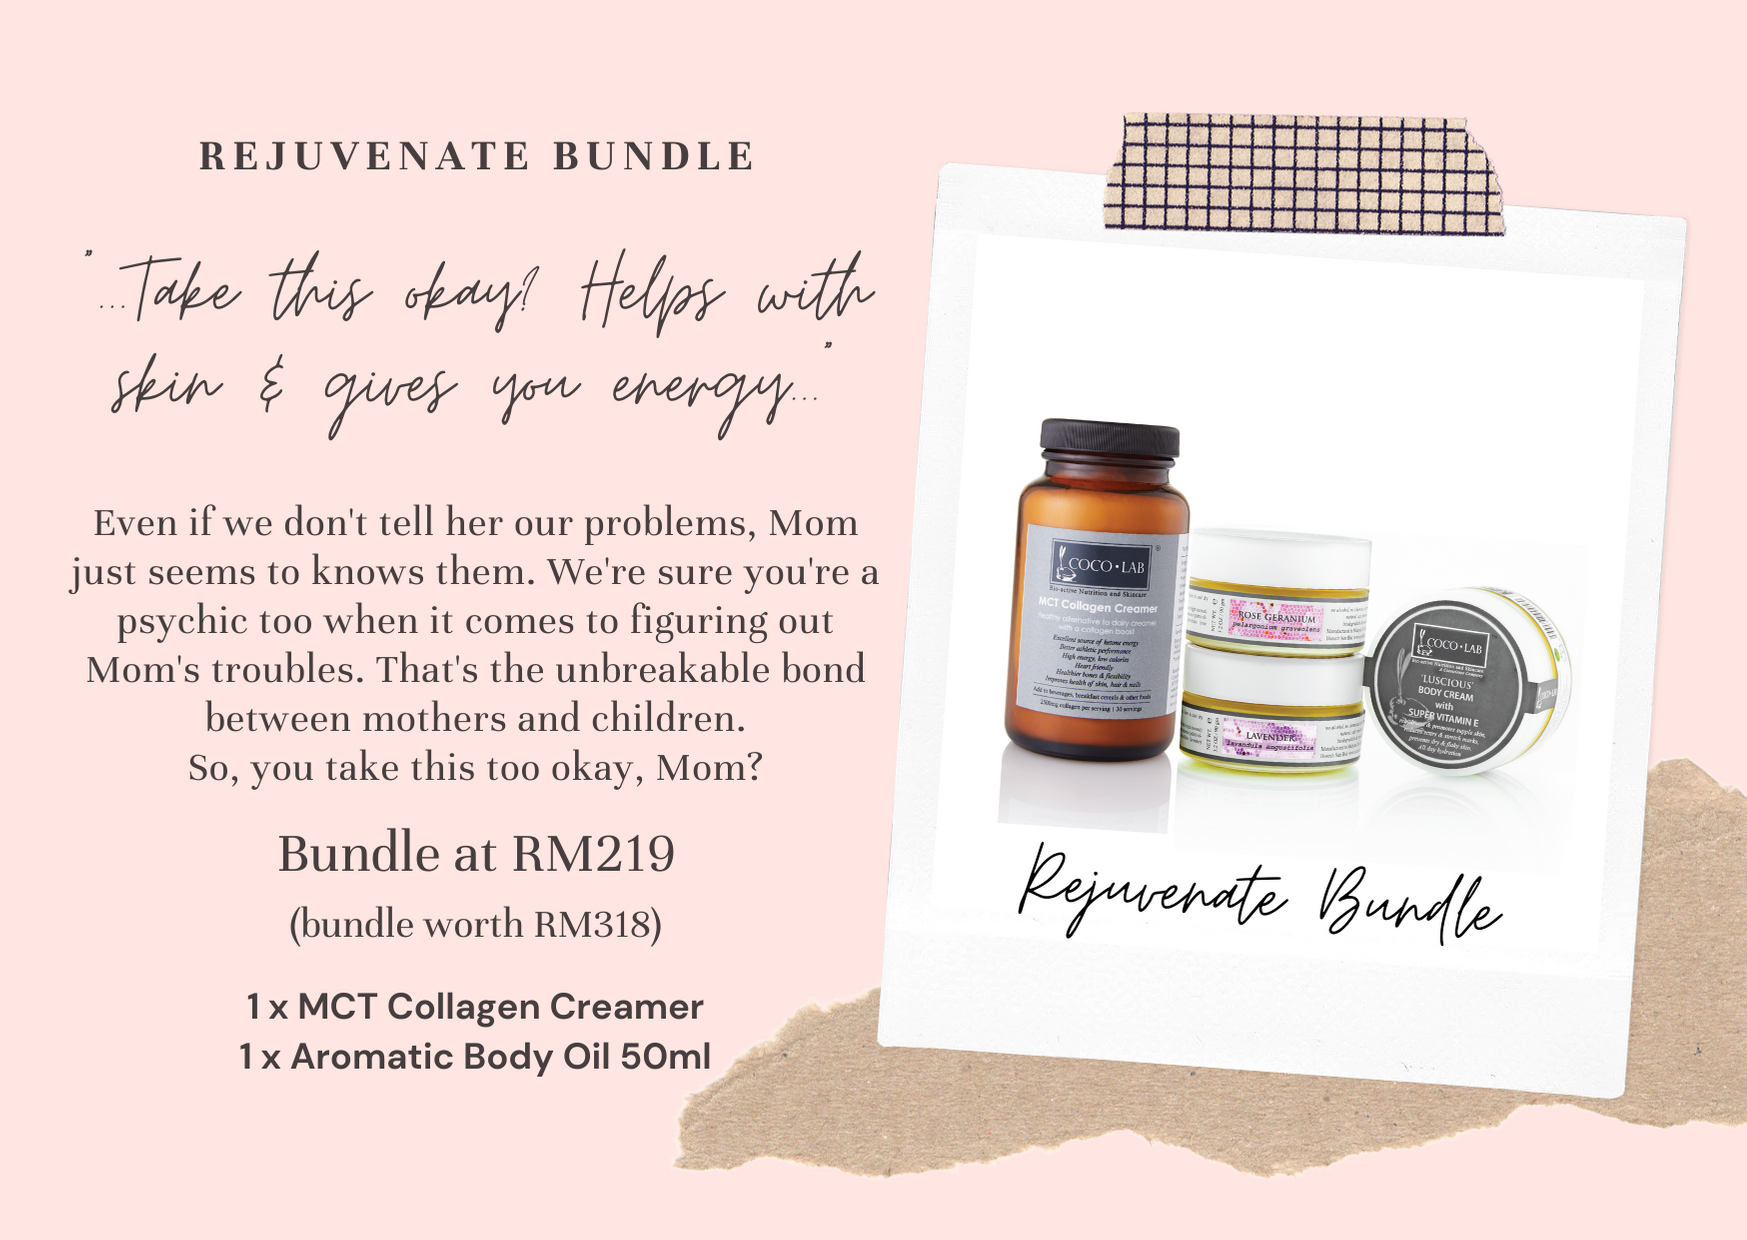 COCOLAB Rejuvenate Skin and Body Bundle